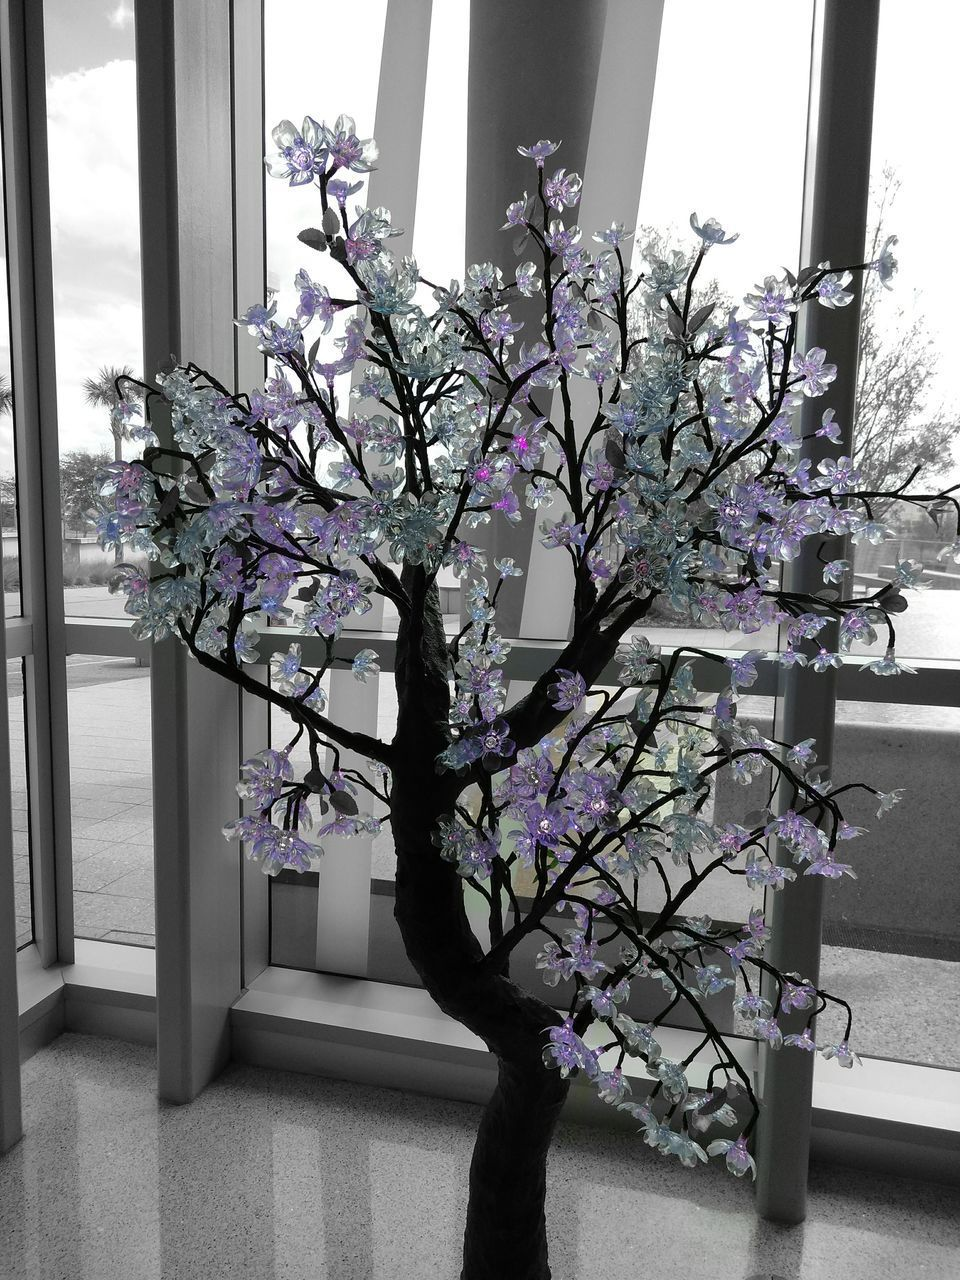 growth, flower, nature, blossom, no people, window, plant, beauty in nature, spring, indoors, branch, tree, day, architecture, fragility, freshness